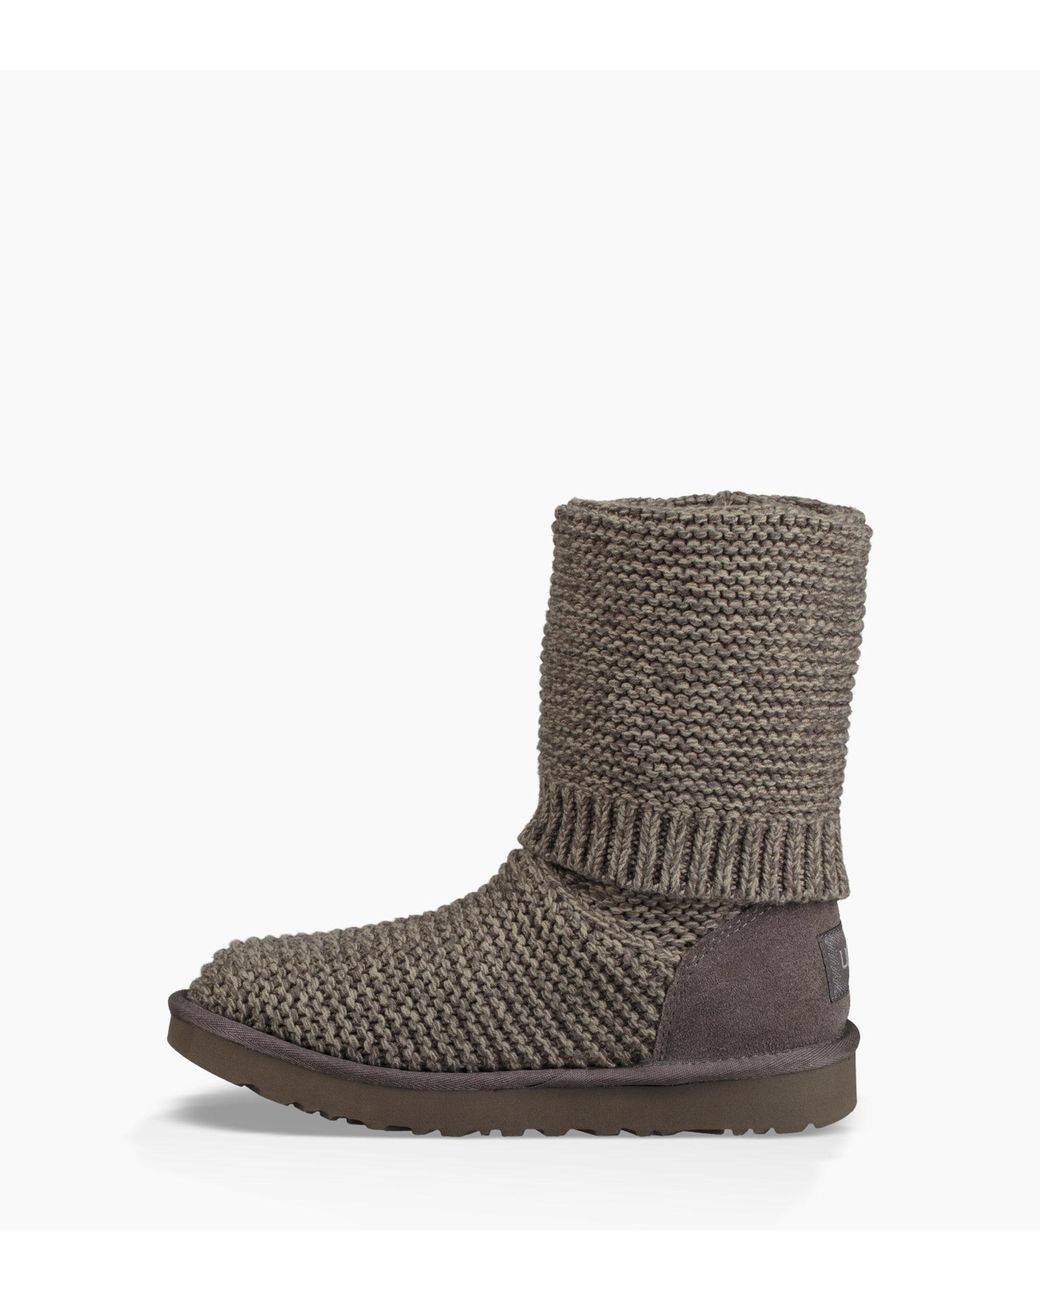 ee9c6b0f294 Women's Purl Cardy Knit Boot Purl Cardy Knit Boot